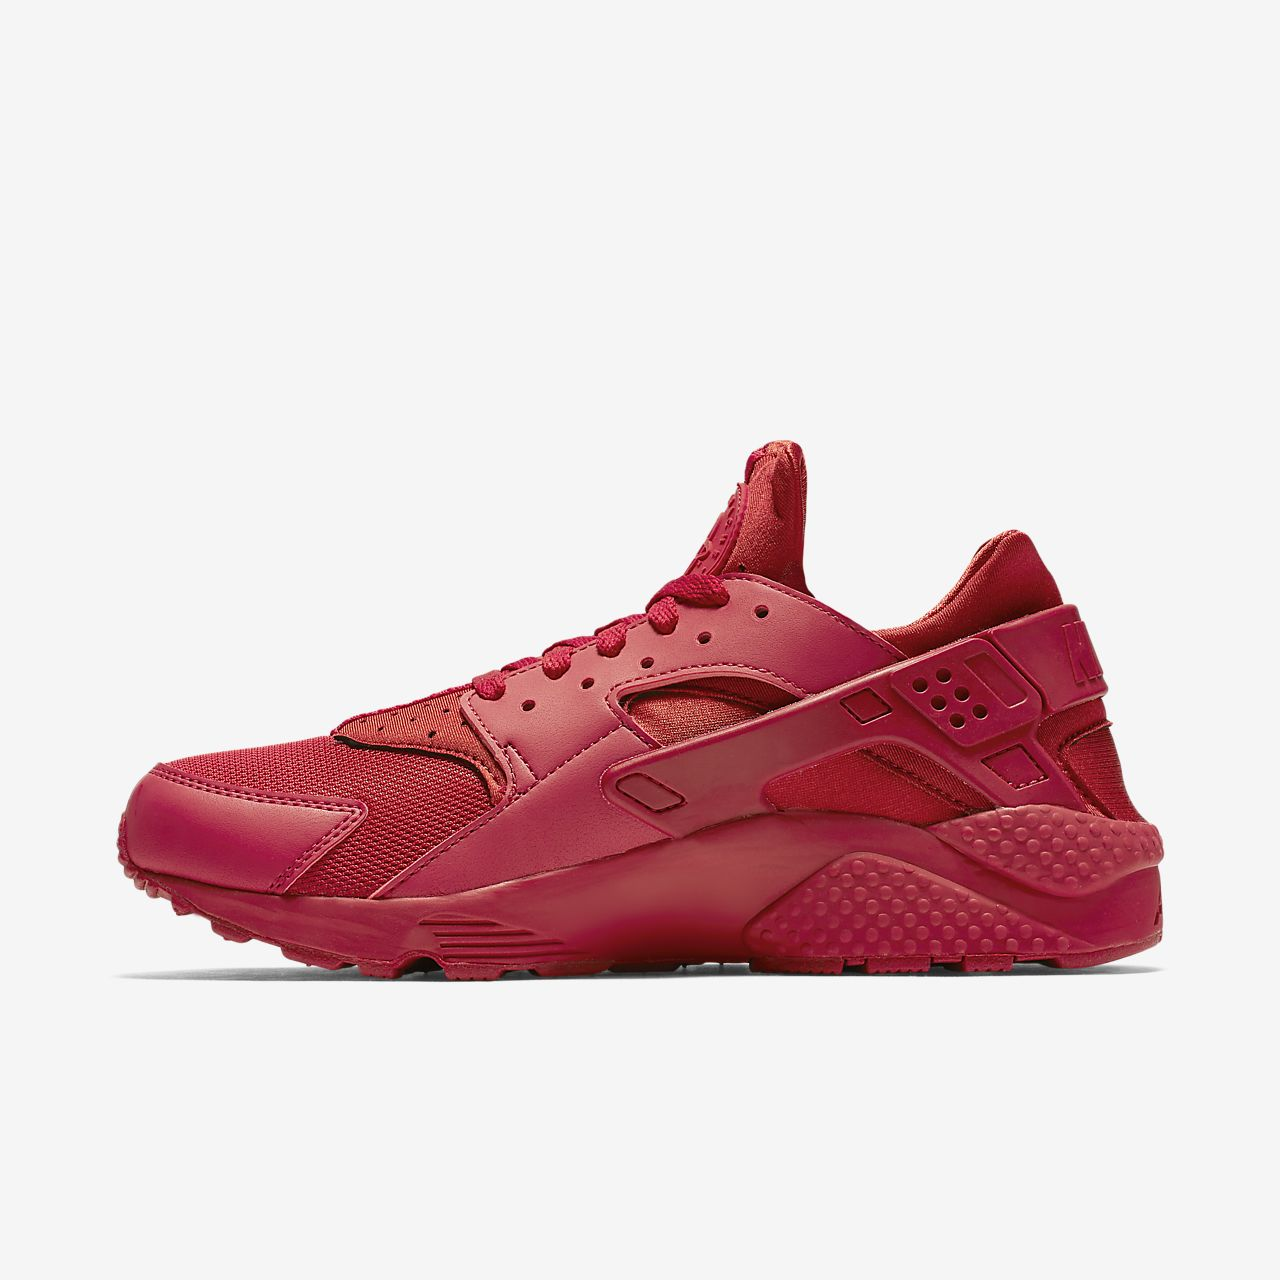 new product dadf5 3f288 ... Nike Air Huarache Men s Shoe